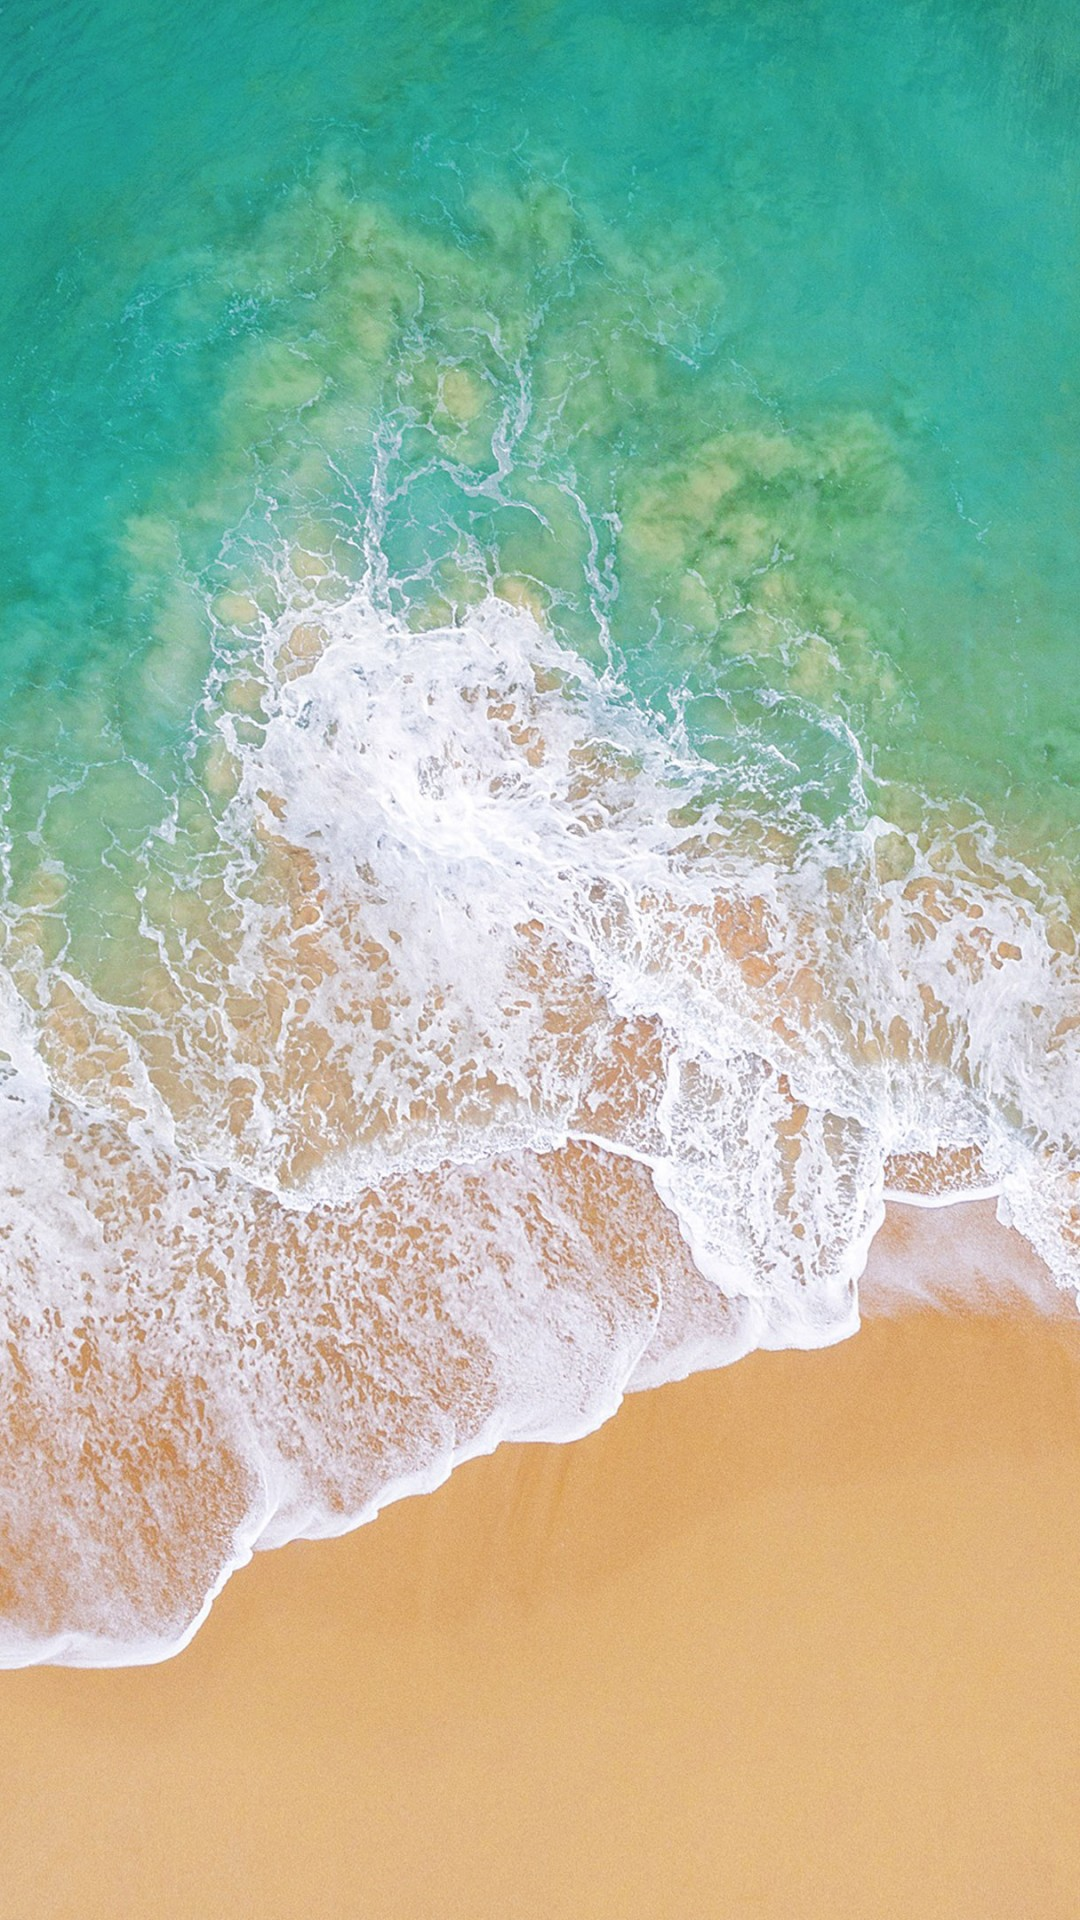 ios 8 wallpaper 4k: Wallpaper IOS 11, 4k, 5k, Beach, Ocean, OS #13655